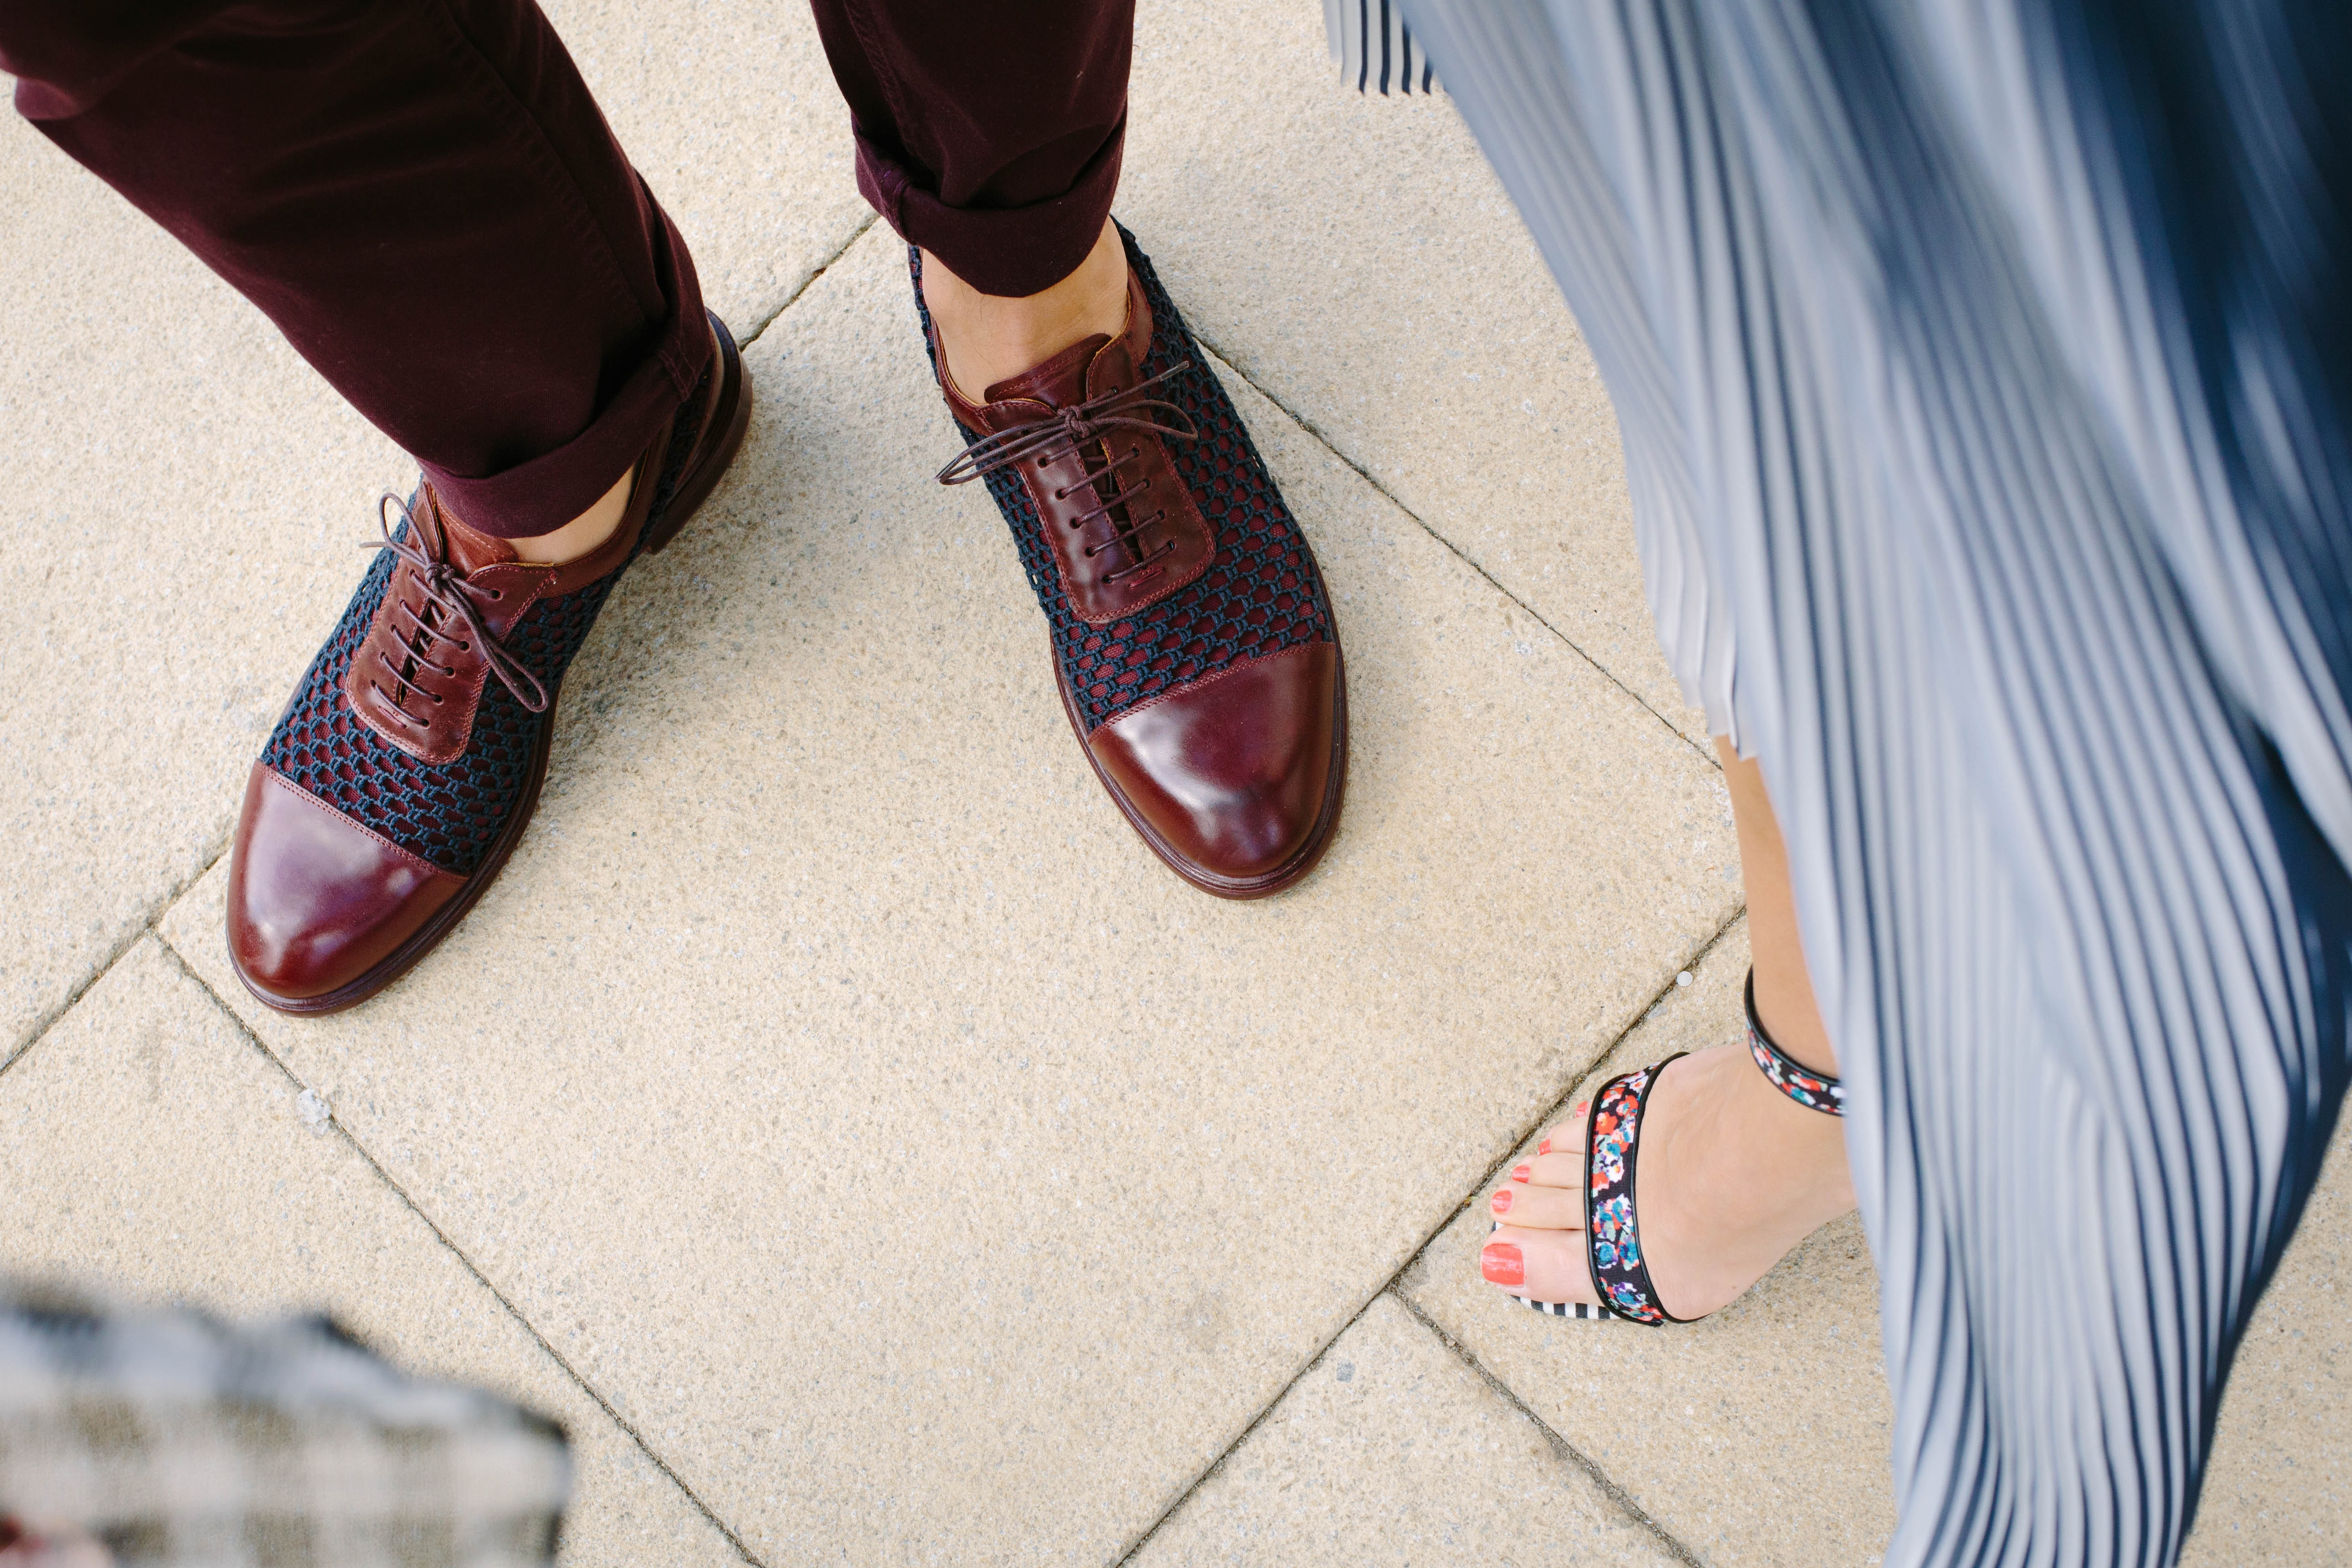 A man in brown leather shoes next to a woman in stylish sandals